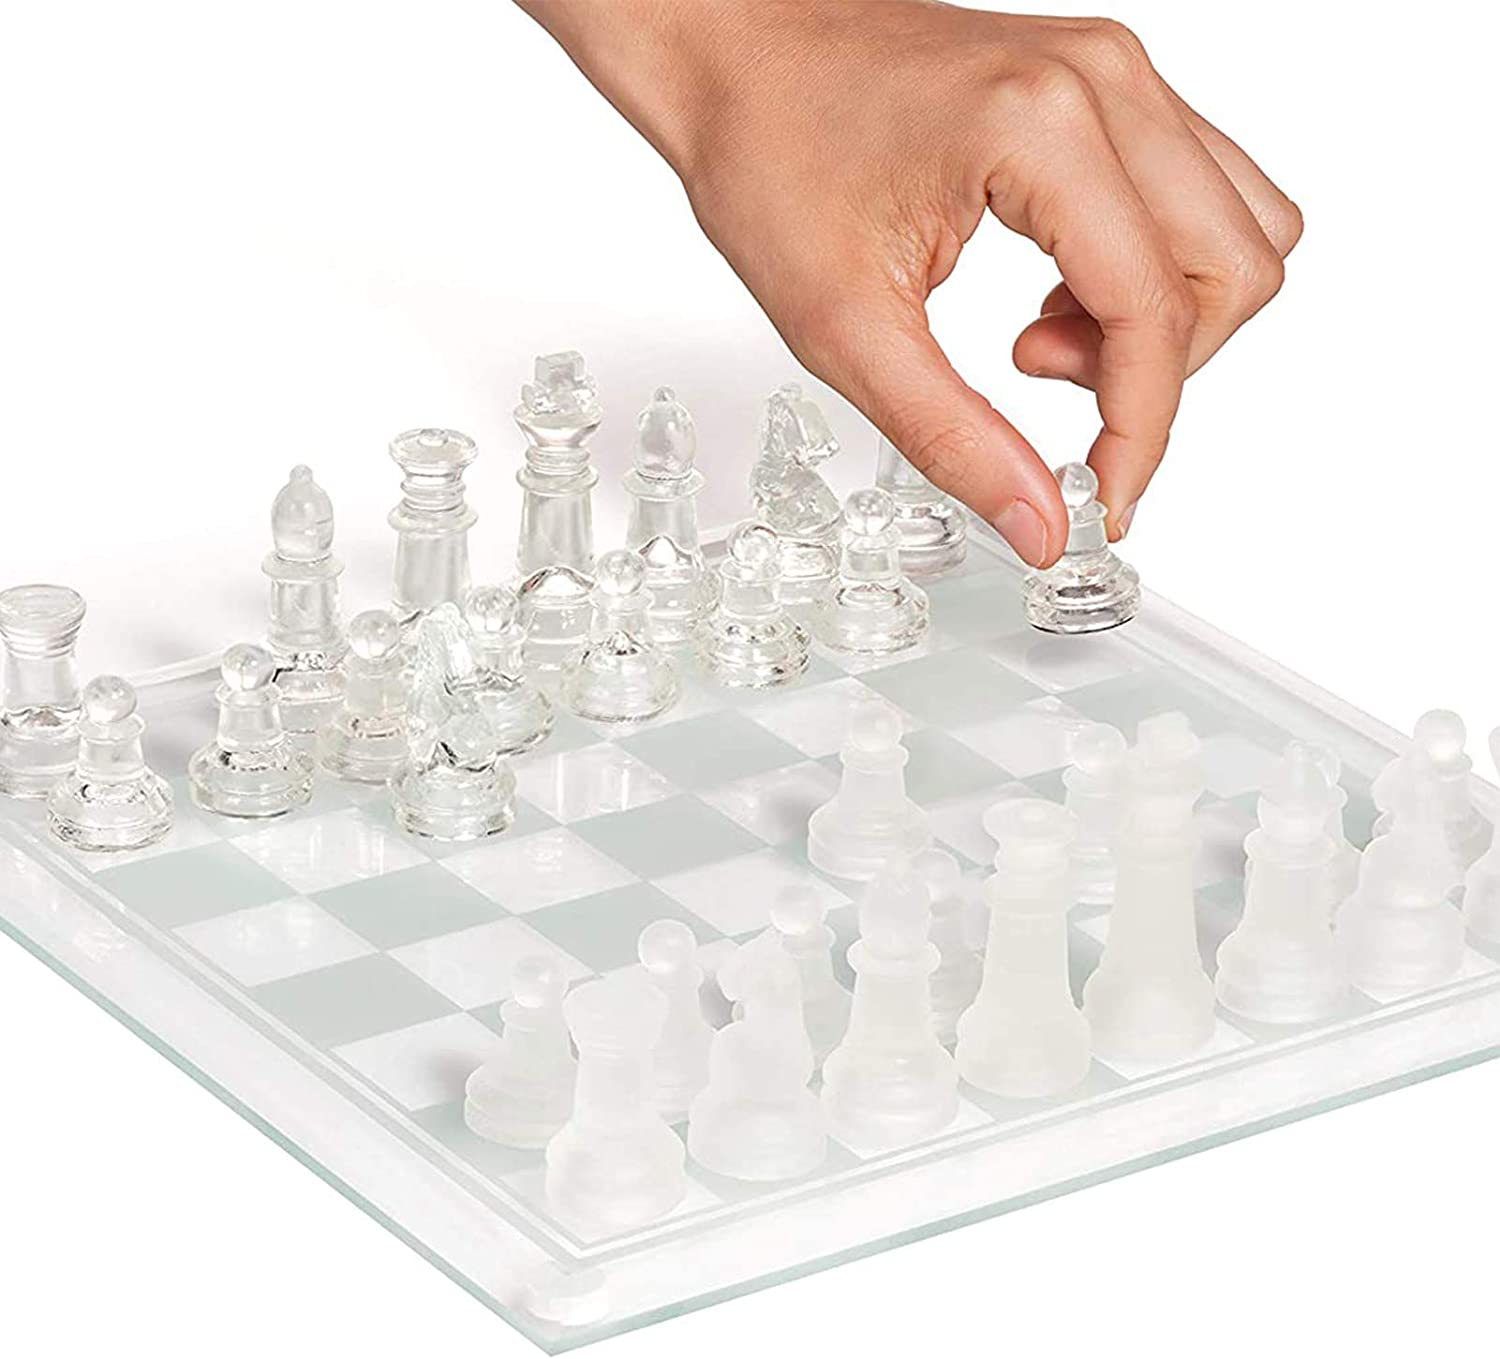 Limited Special Price Elegant Glass Chess Set Board Sale Special Price Games Solid Pieces w